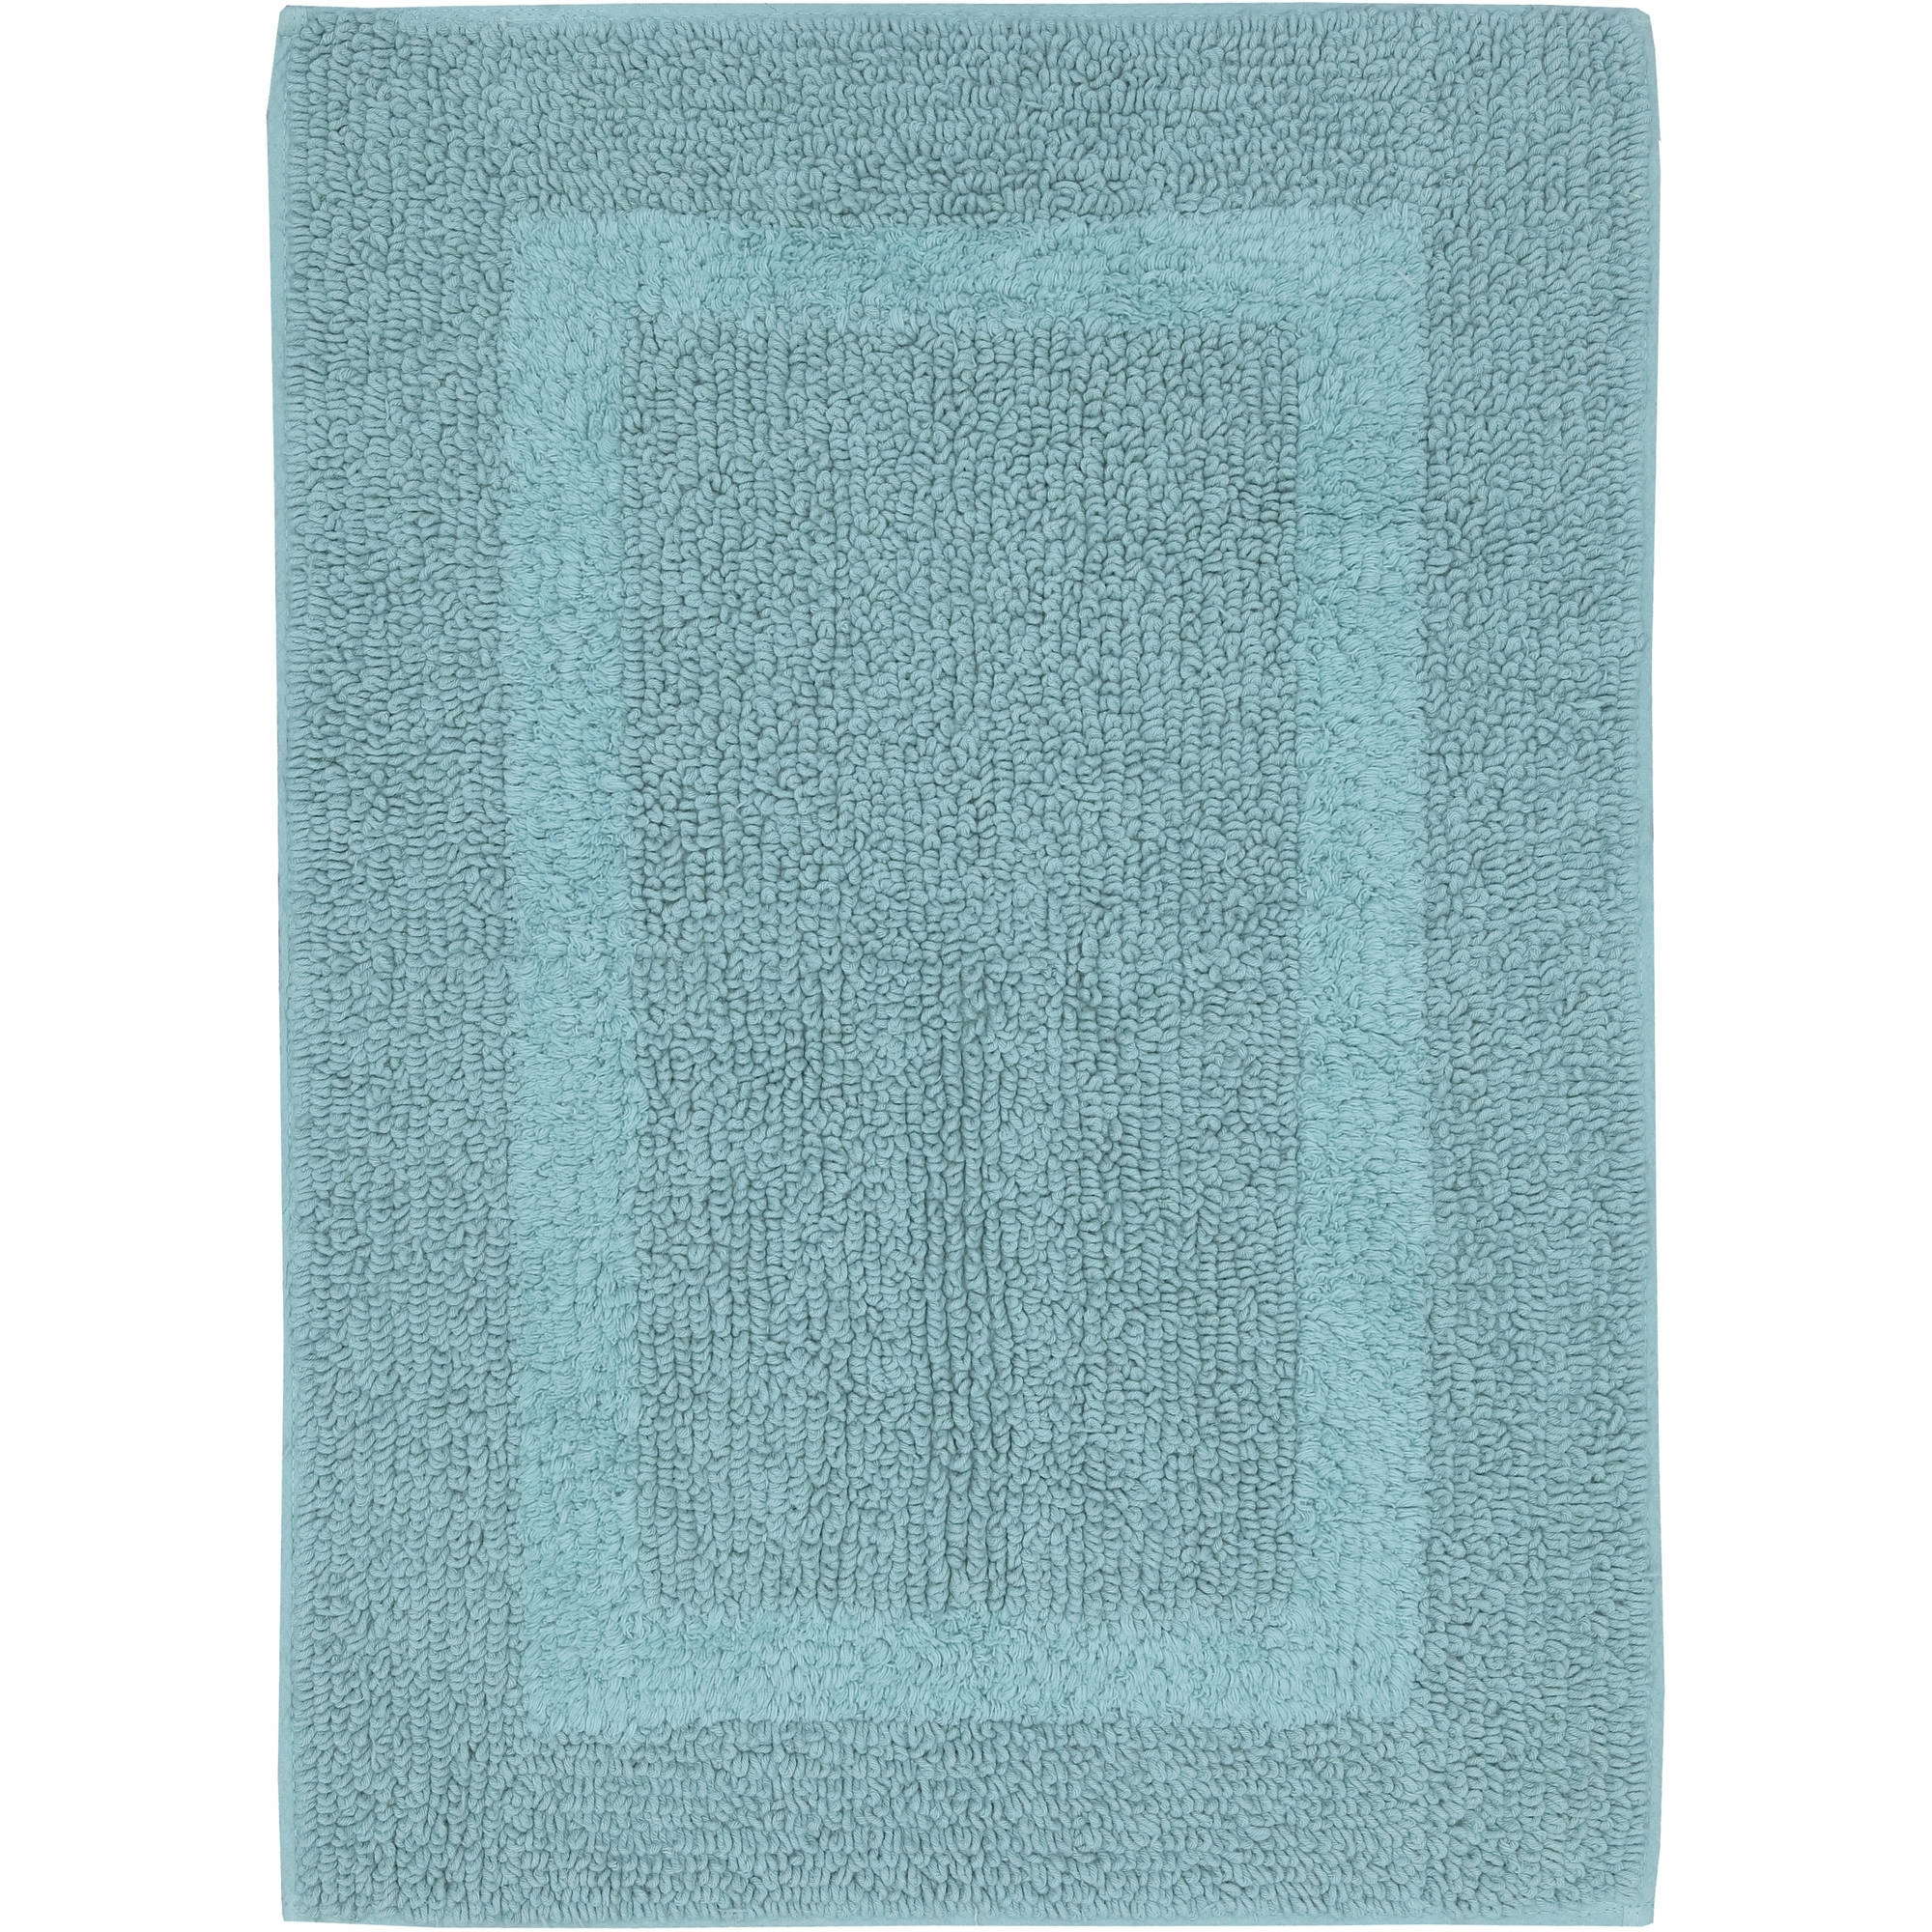 Permalink to Cannon Bathroom Rugs